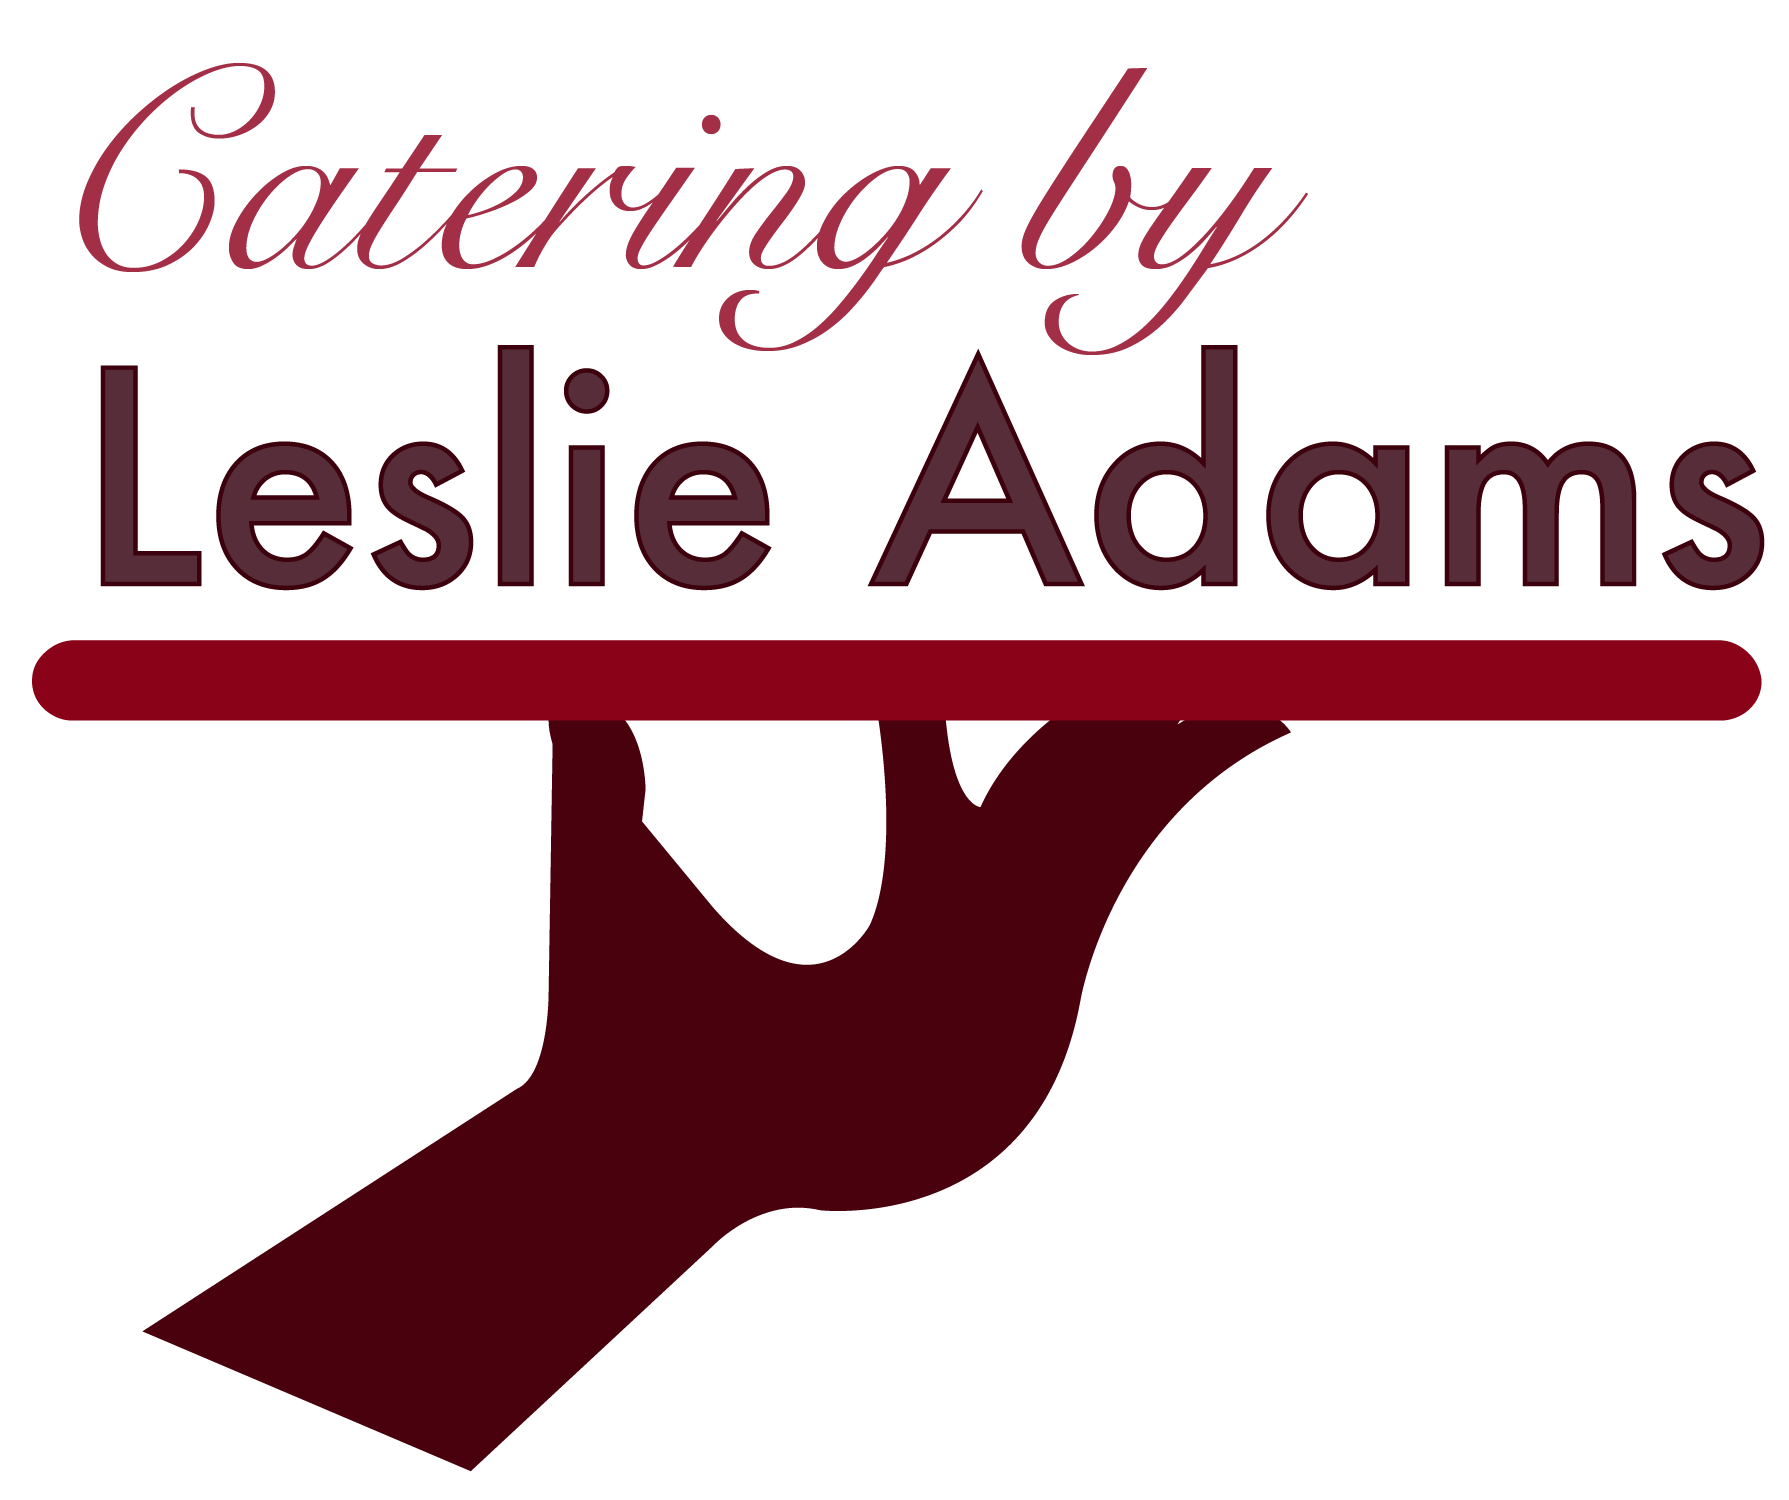 Catering by Leslie Adams